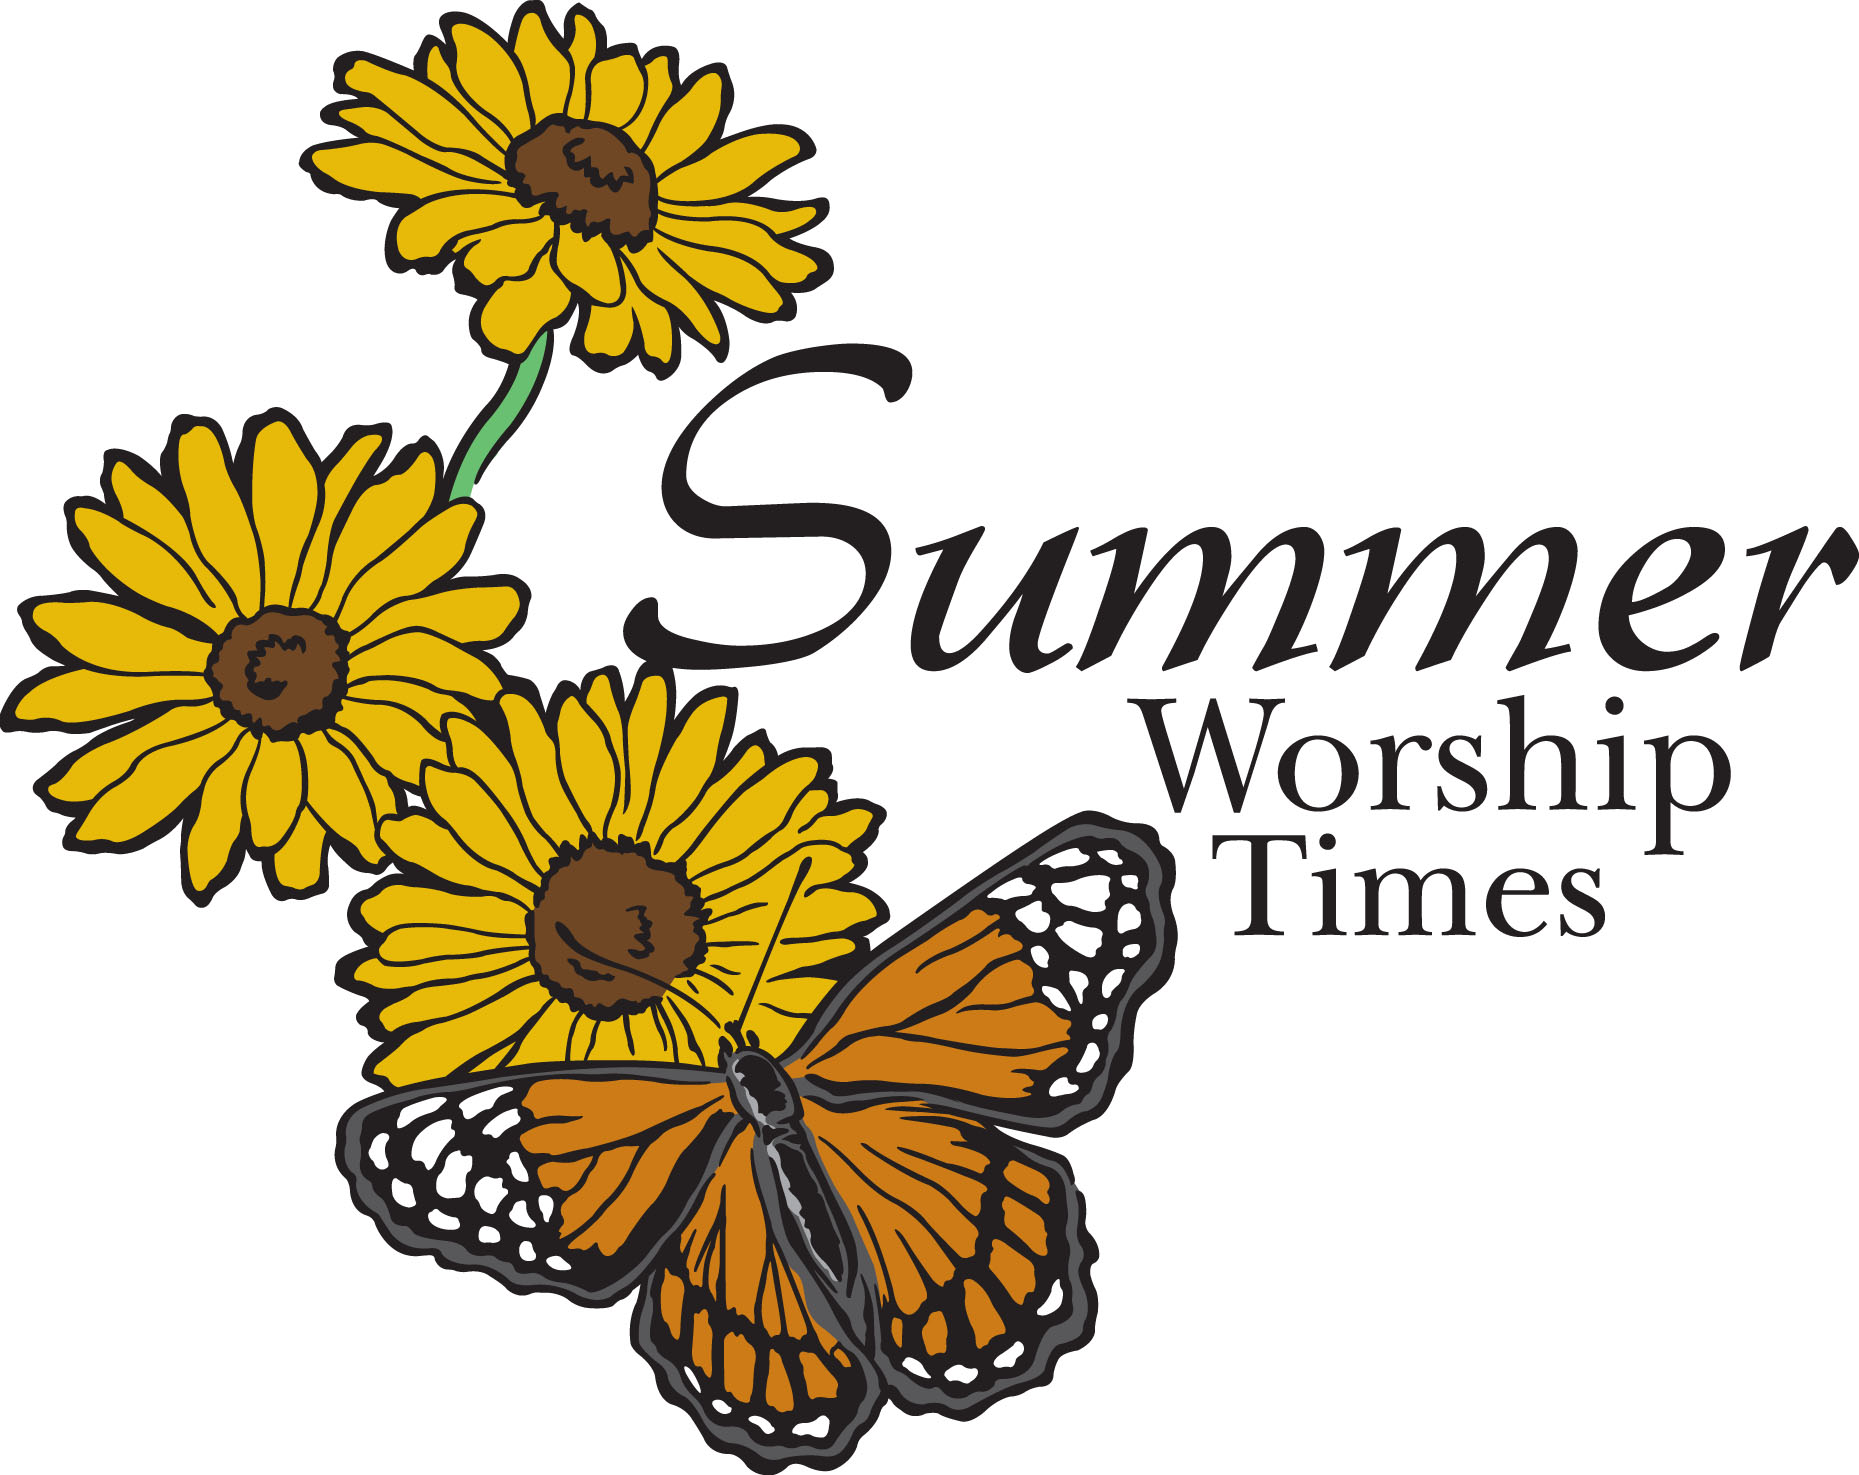 Summer worship clipart picture free library SUMMER WORSHIP SCHEDULE - Clip Art Library picture free library